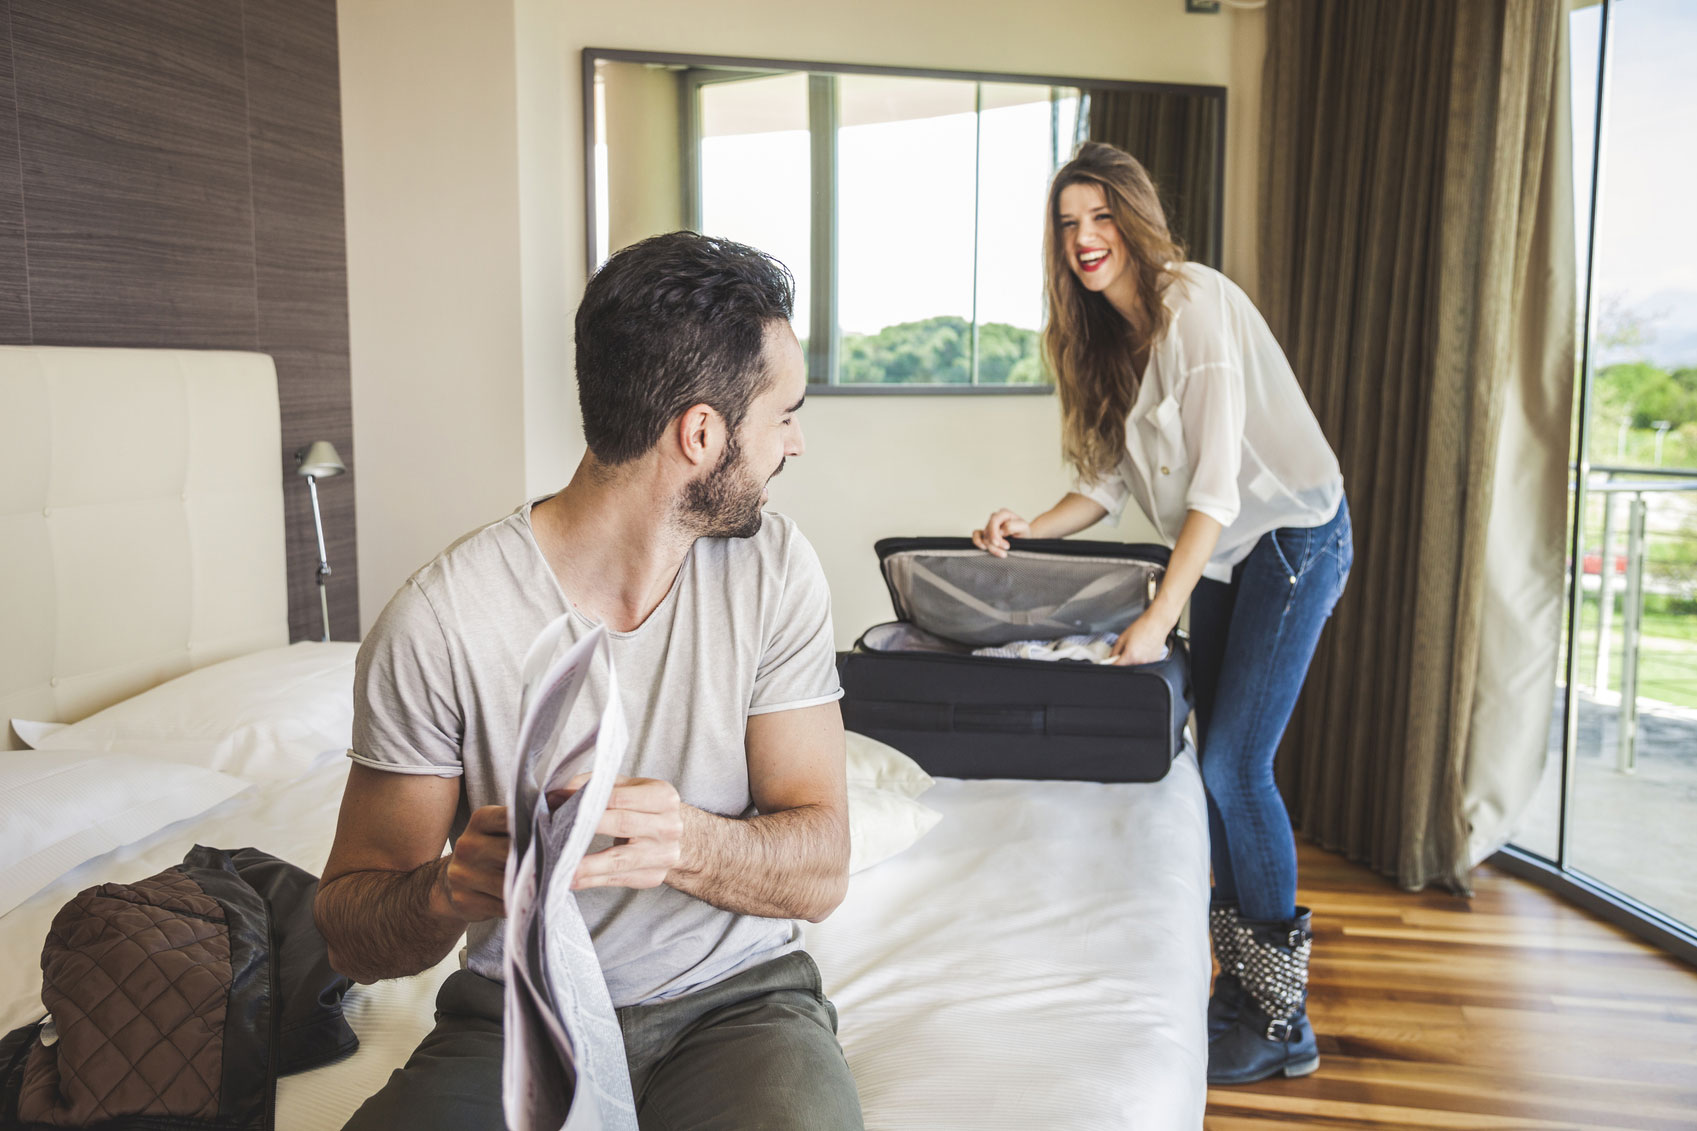 Couple-in-hotel-room-getting-dressed-000054796390_Medium.jpg